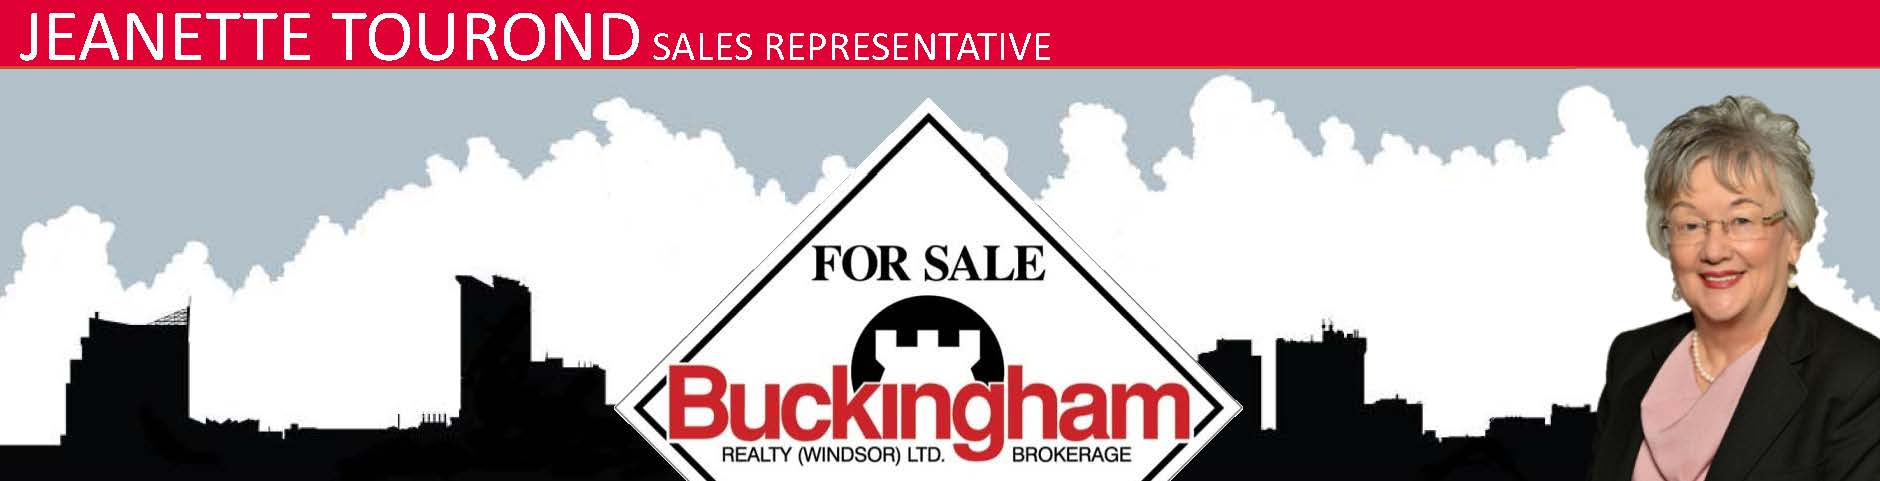 Jeanette Tourond - Buckingham Realty